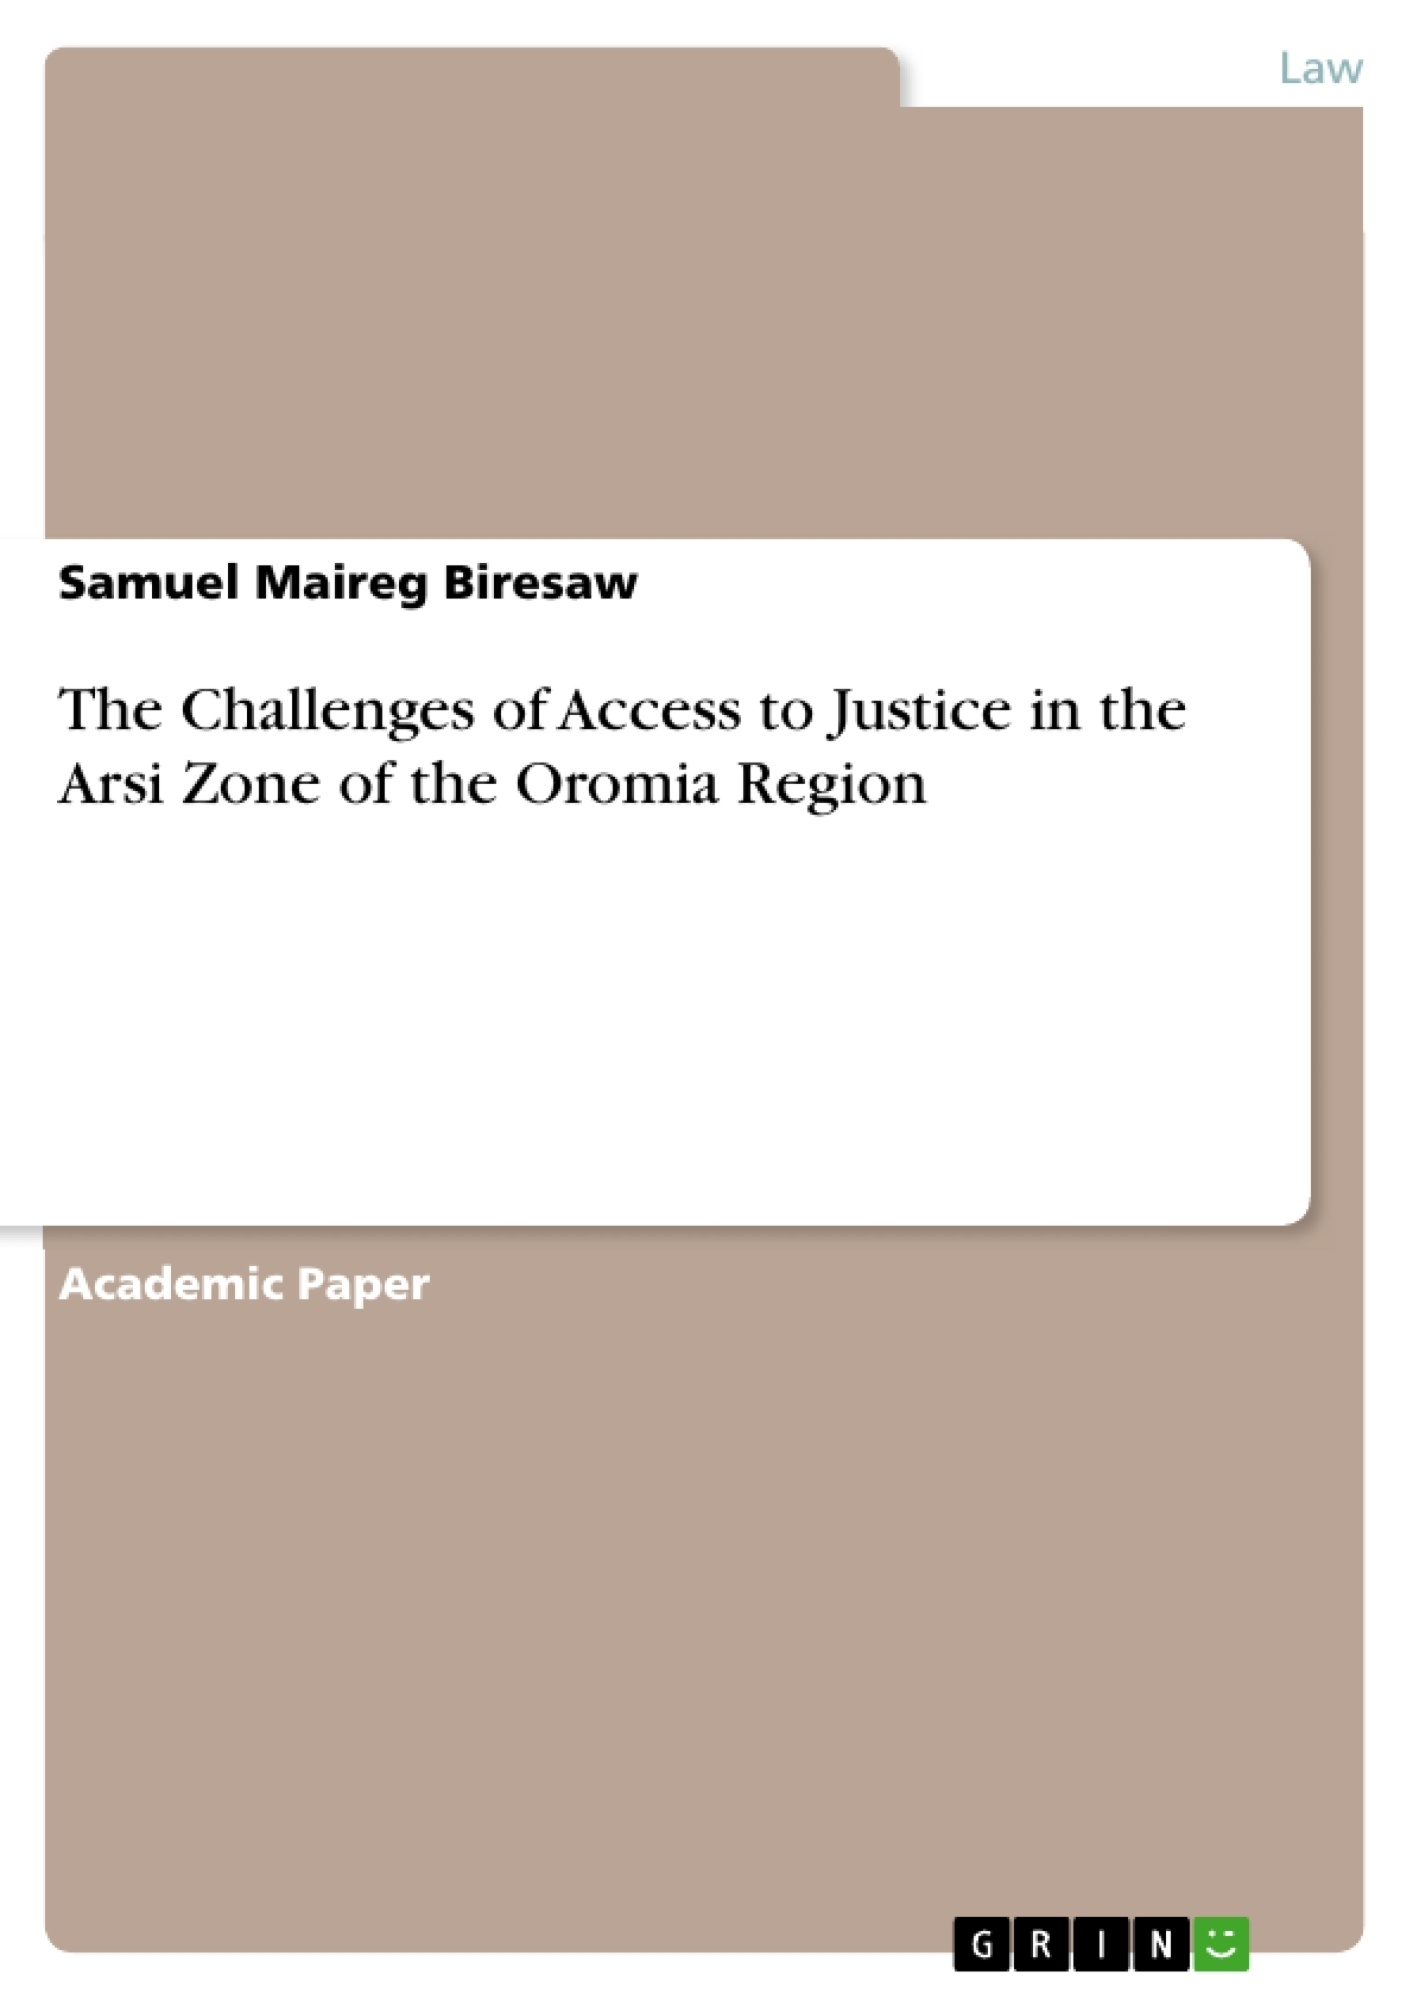 GRIN - The Challenges of Access to Justice in the Arsi Zone of the Oromia  Region